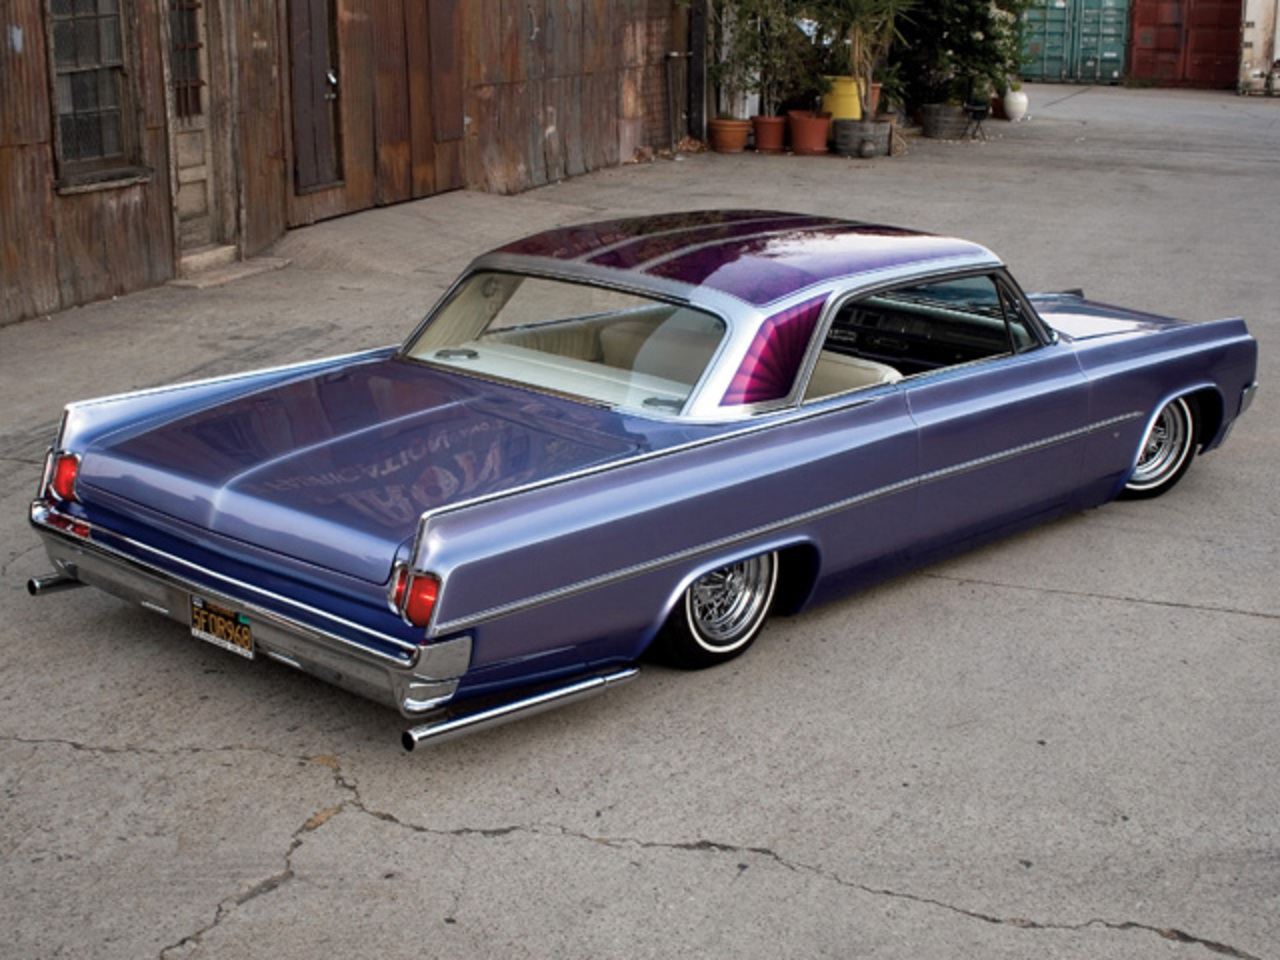 Oldsmobile Dynamic 88 4dr. View Download Wallpaper. 640x480. Comments